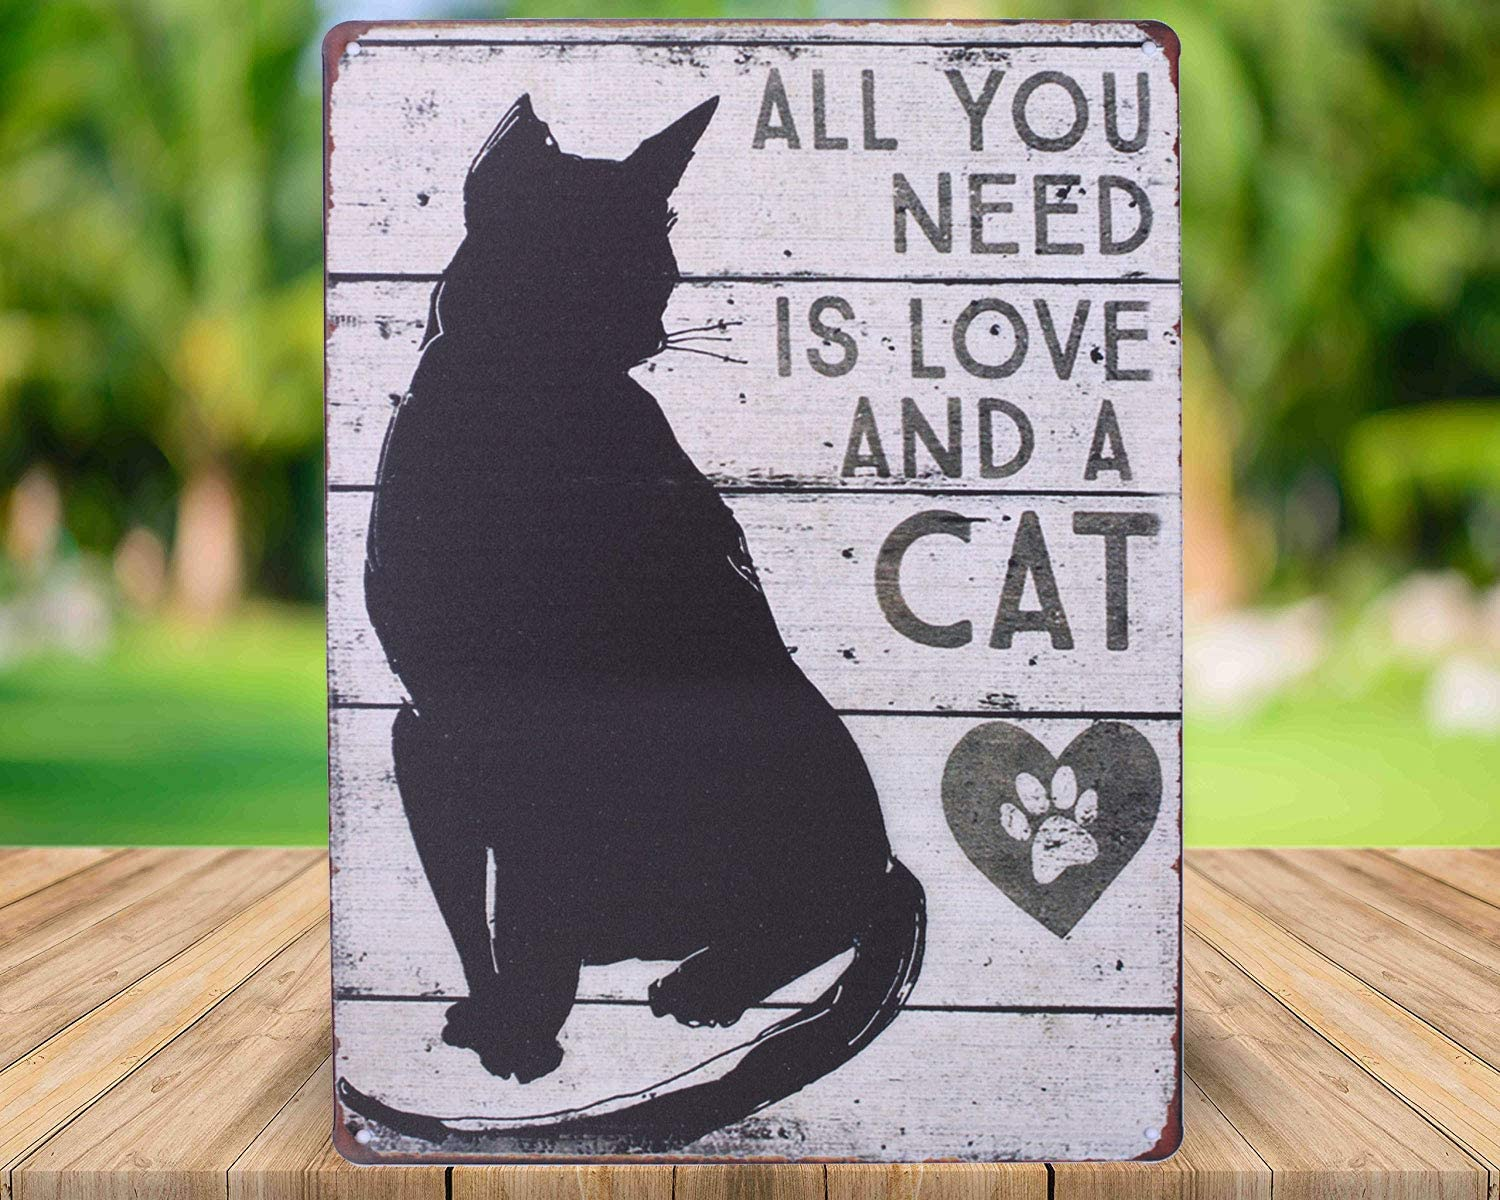 cat gifts cat gift cat owner gift for cat owner cat cat signs cat sign cat wall art all you need is love and a cat cat decor